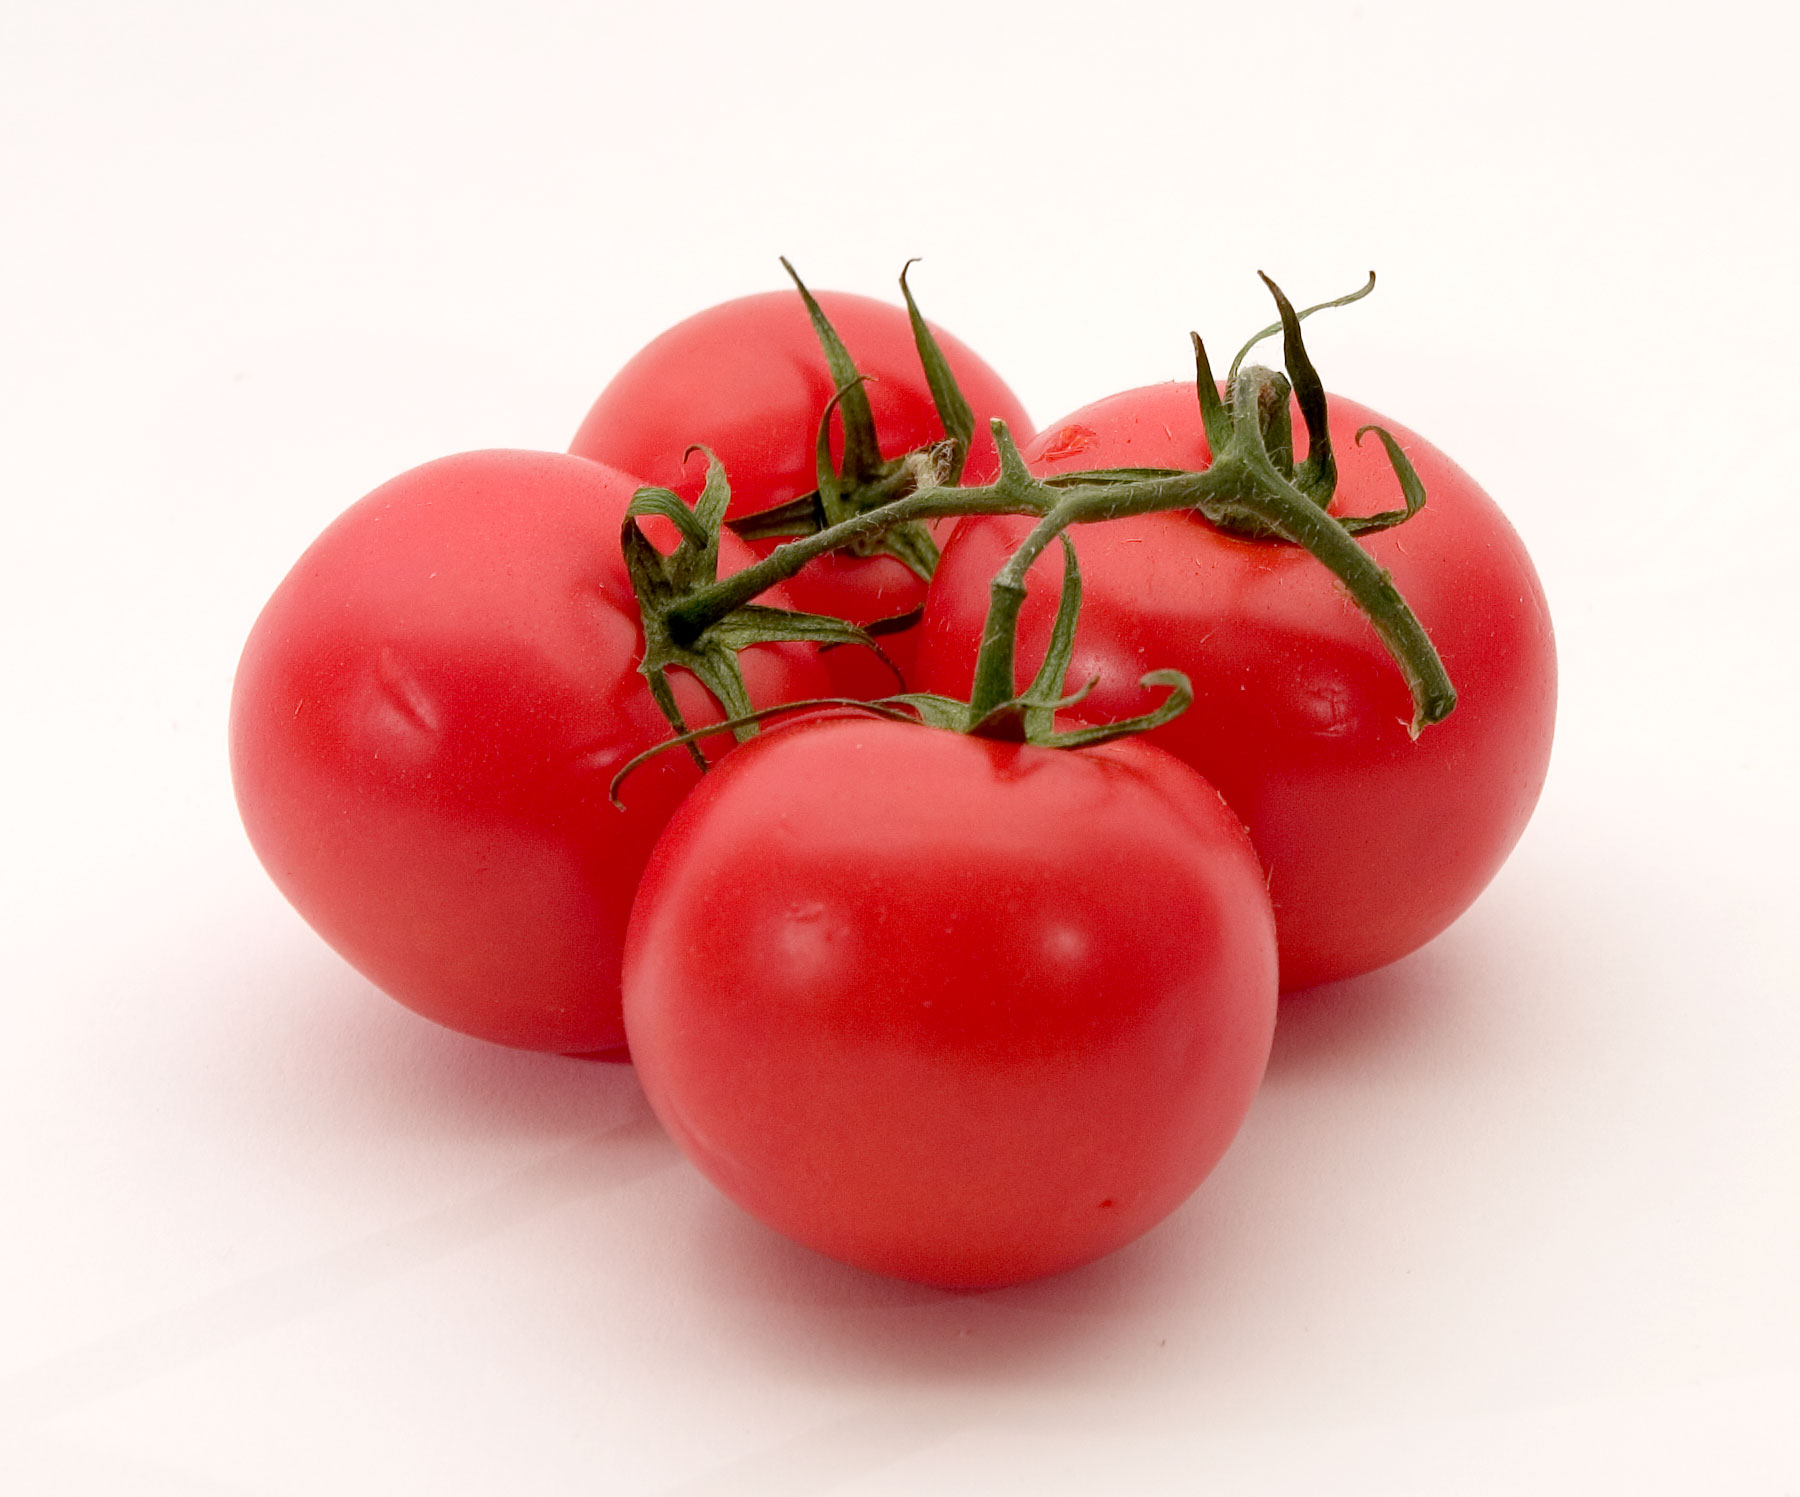 A cluster of red tomatoes